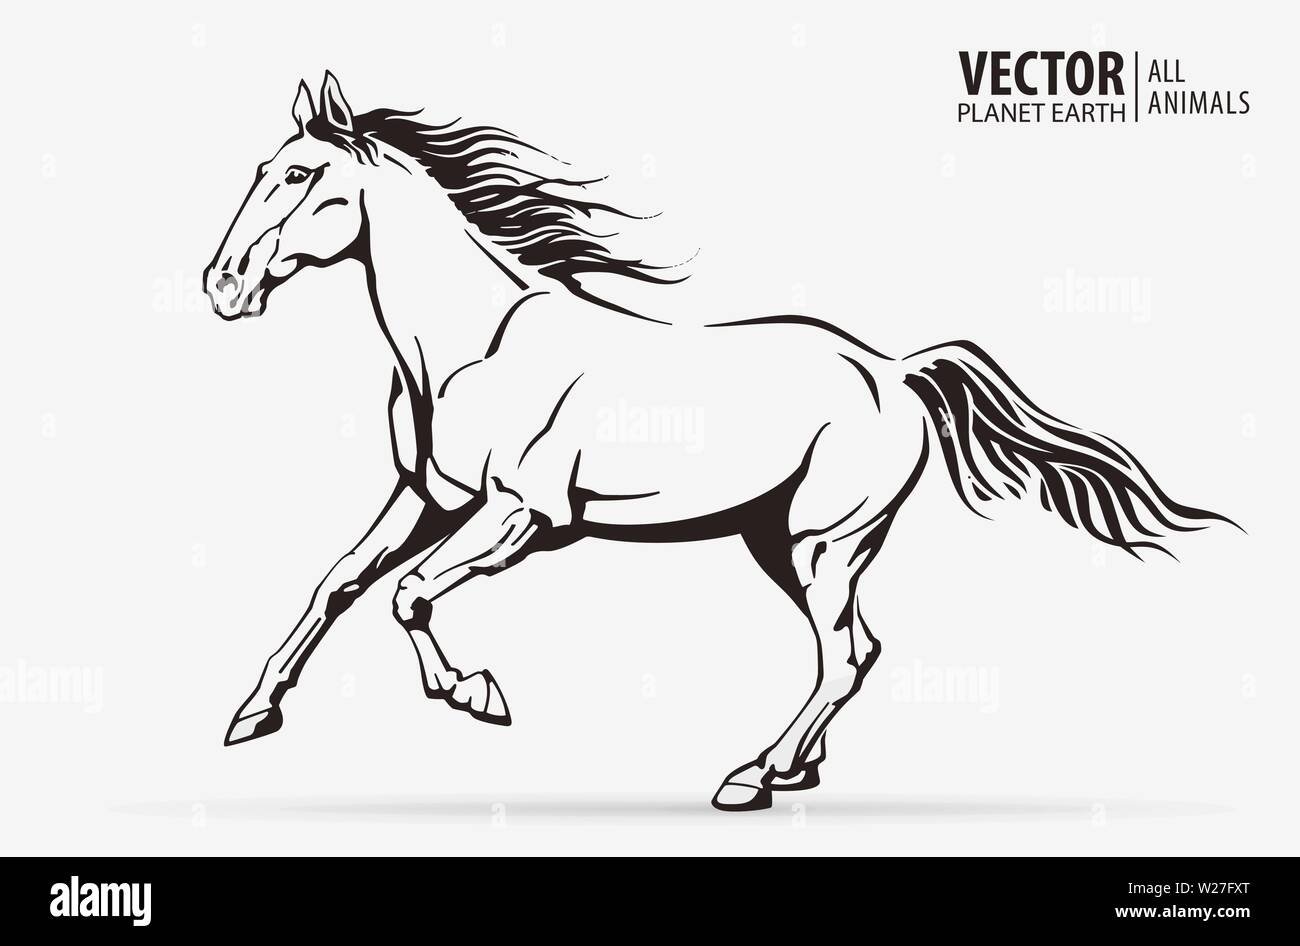 Silhouette Of A Running Horse Galloping Animal Logo Champion Sport Isolated On A White Background Vector Illustration Stock Vector Image Art Alamy